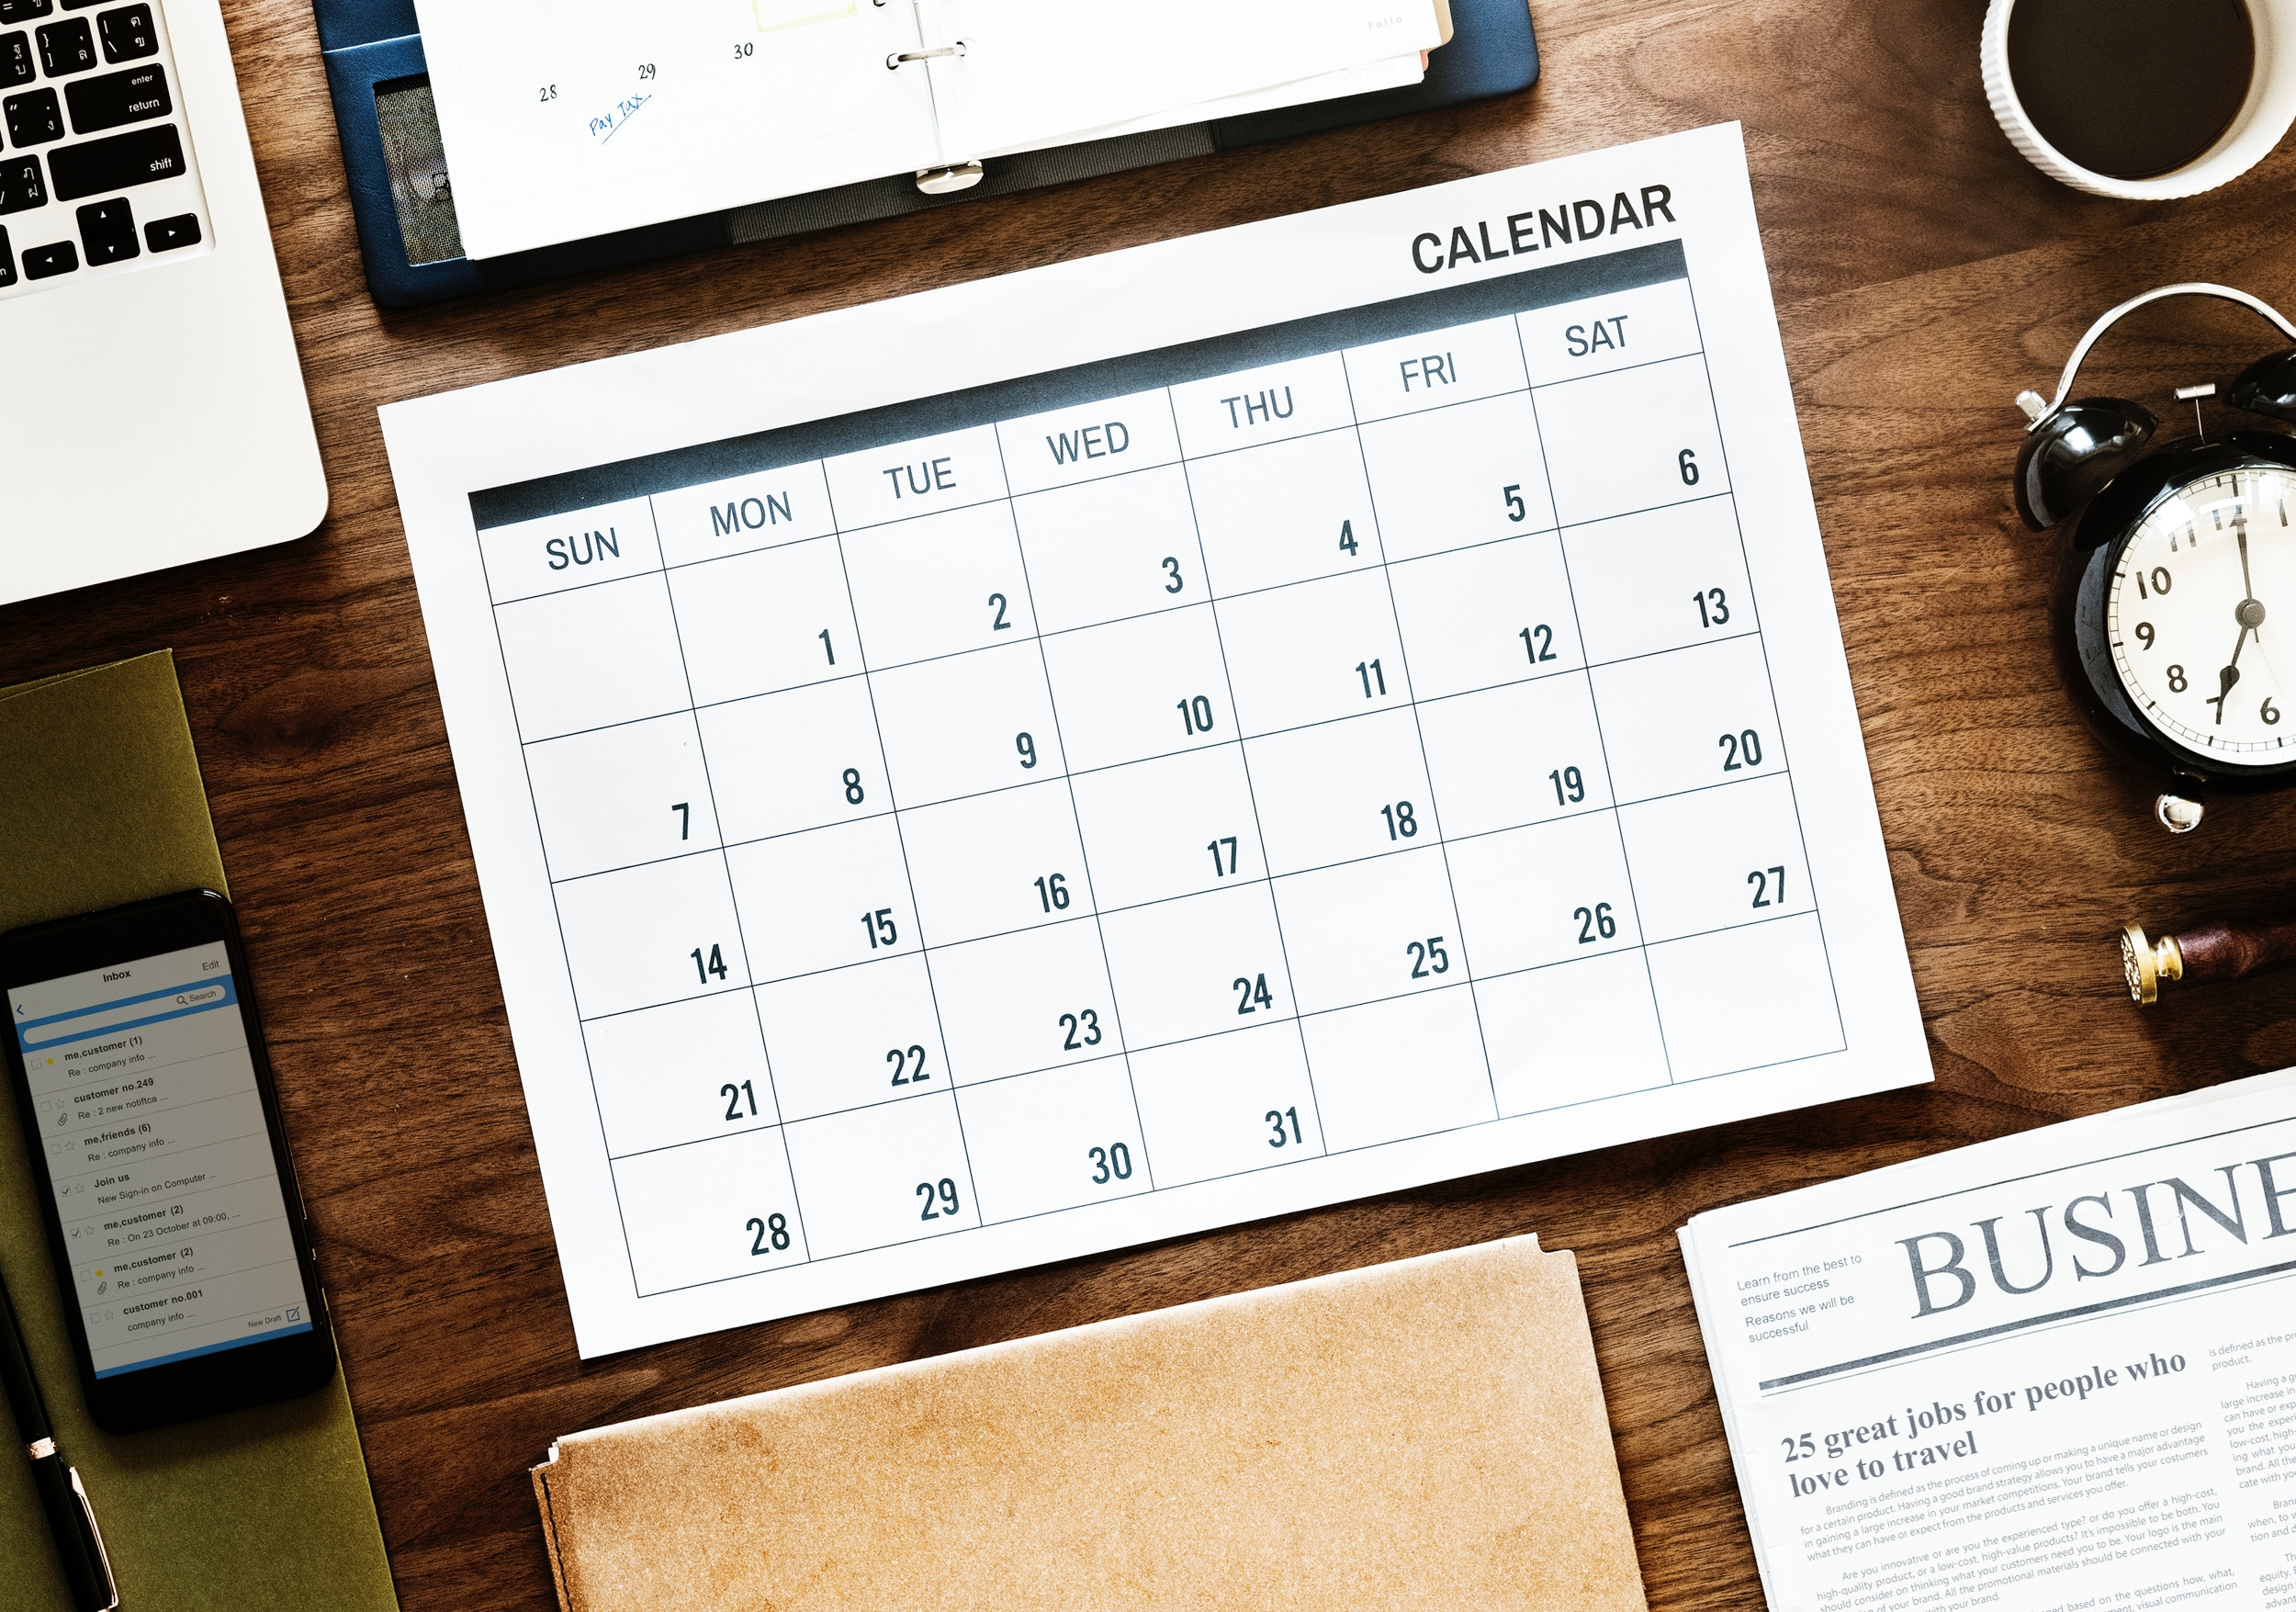 2018 Social Media Marketing Calendar